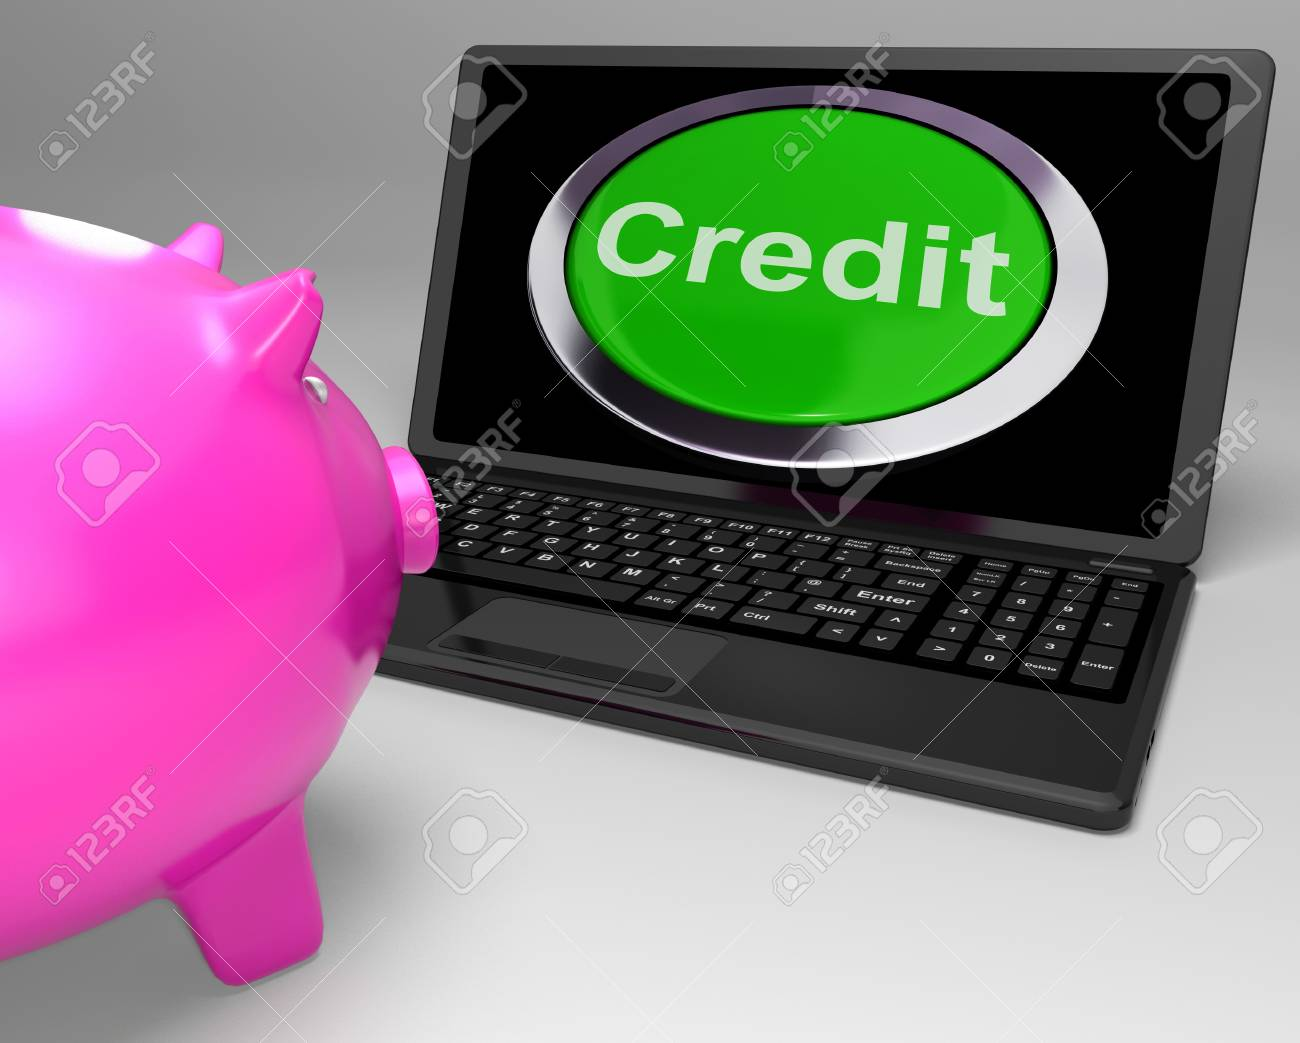 Credit Button On Laptop Shows Financial Loan Or Money Borrowed Stock Photo - 18407801